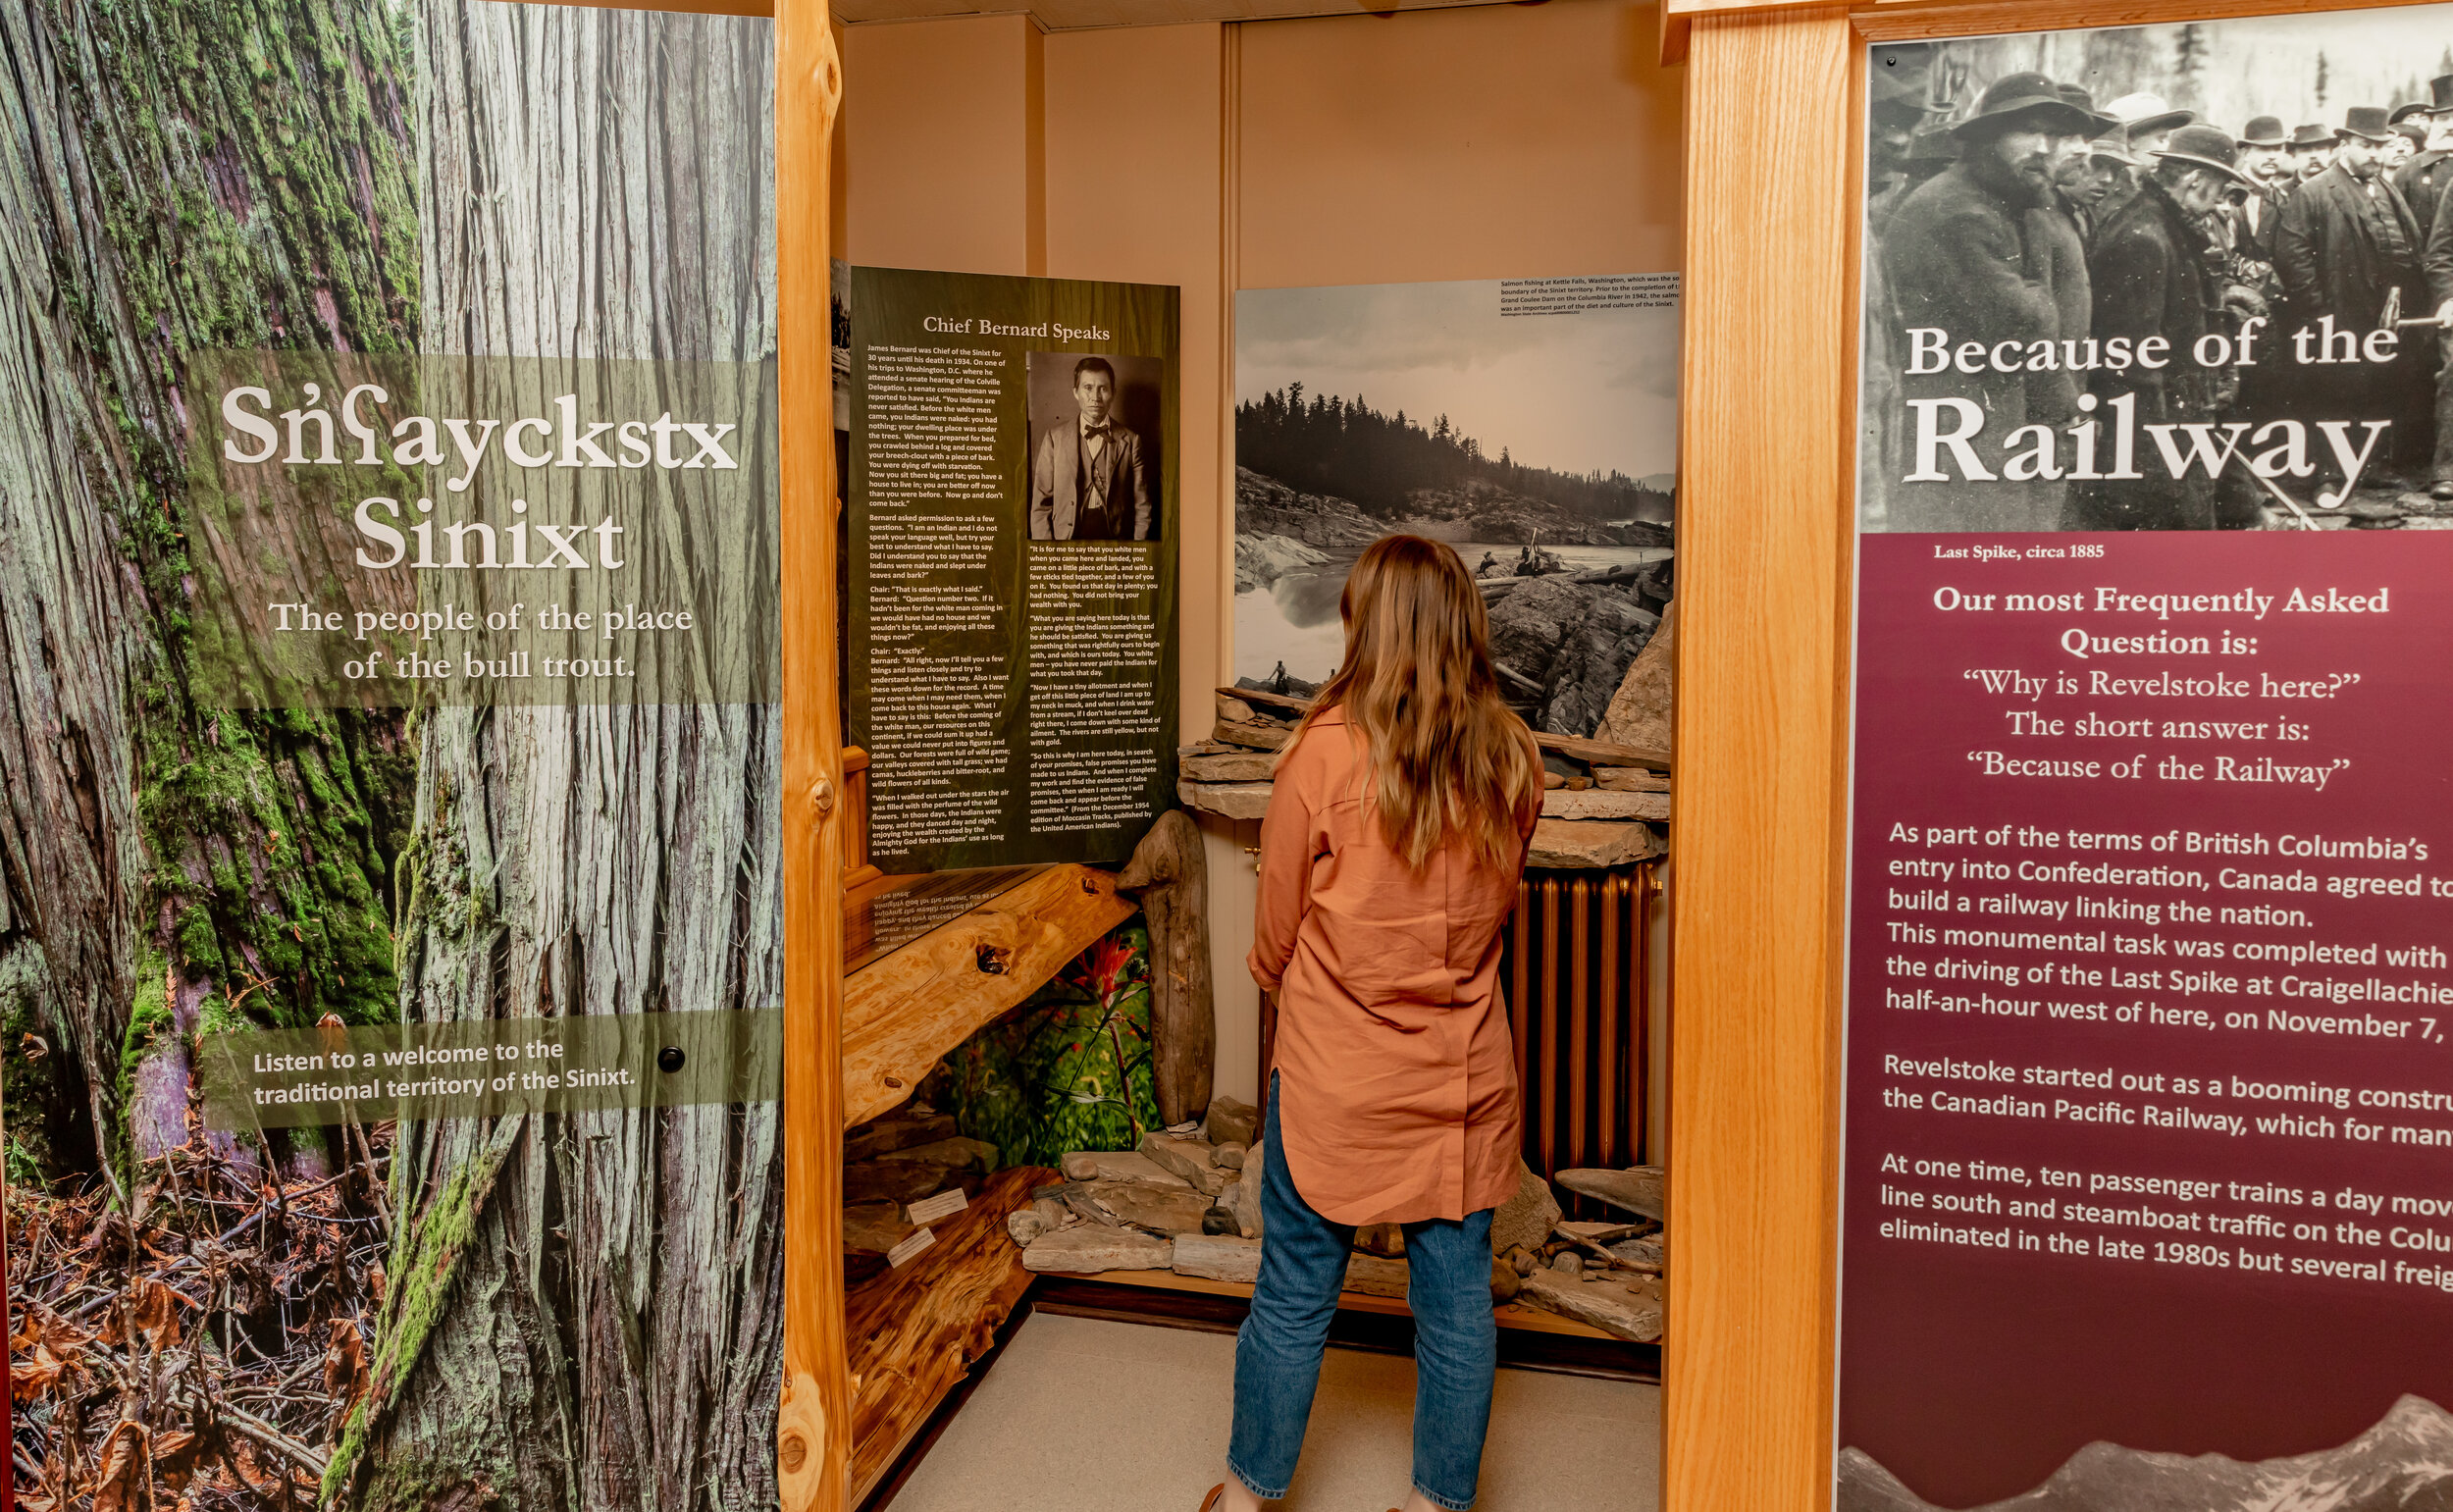 Sinixt: People of the Bull Trout - Meet Revelstoke's indigenous people in this permanent exhibit. Listen to the Sinixt language yourself and try to smell the exhibit's sweet cedar scent.